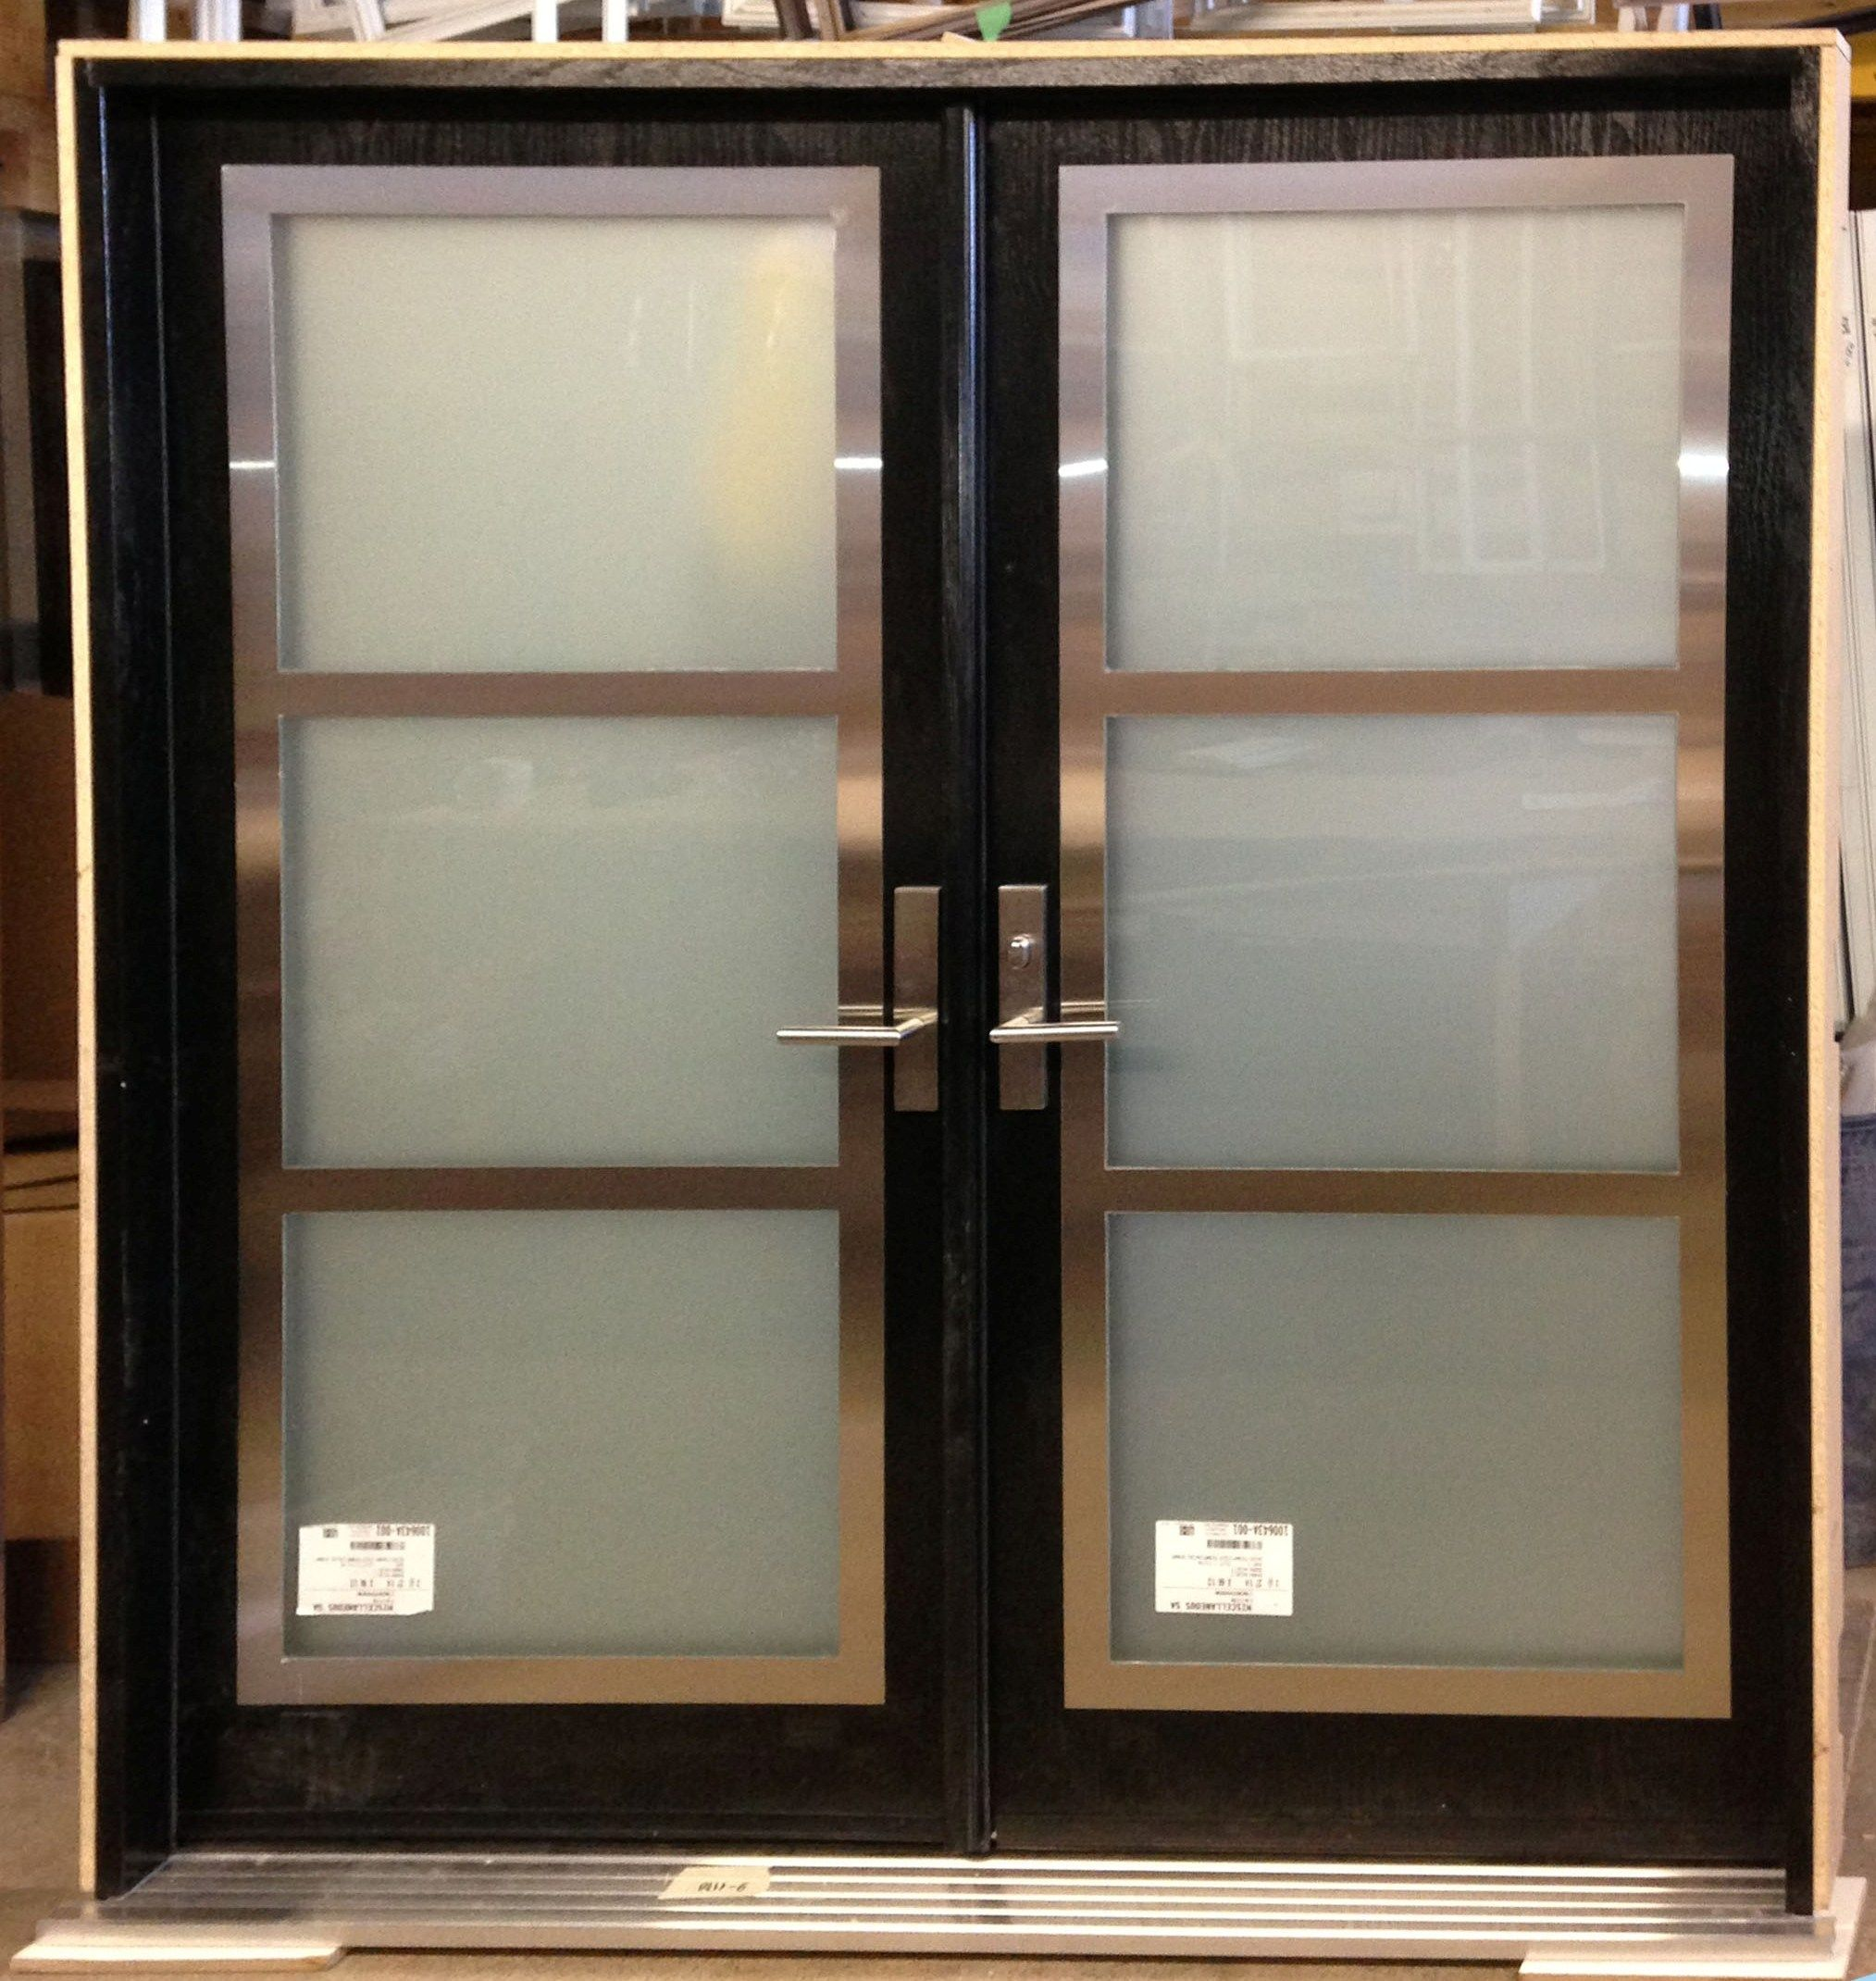 Double entry door with stainless steel frame on top of for Entrance door frame